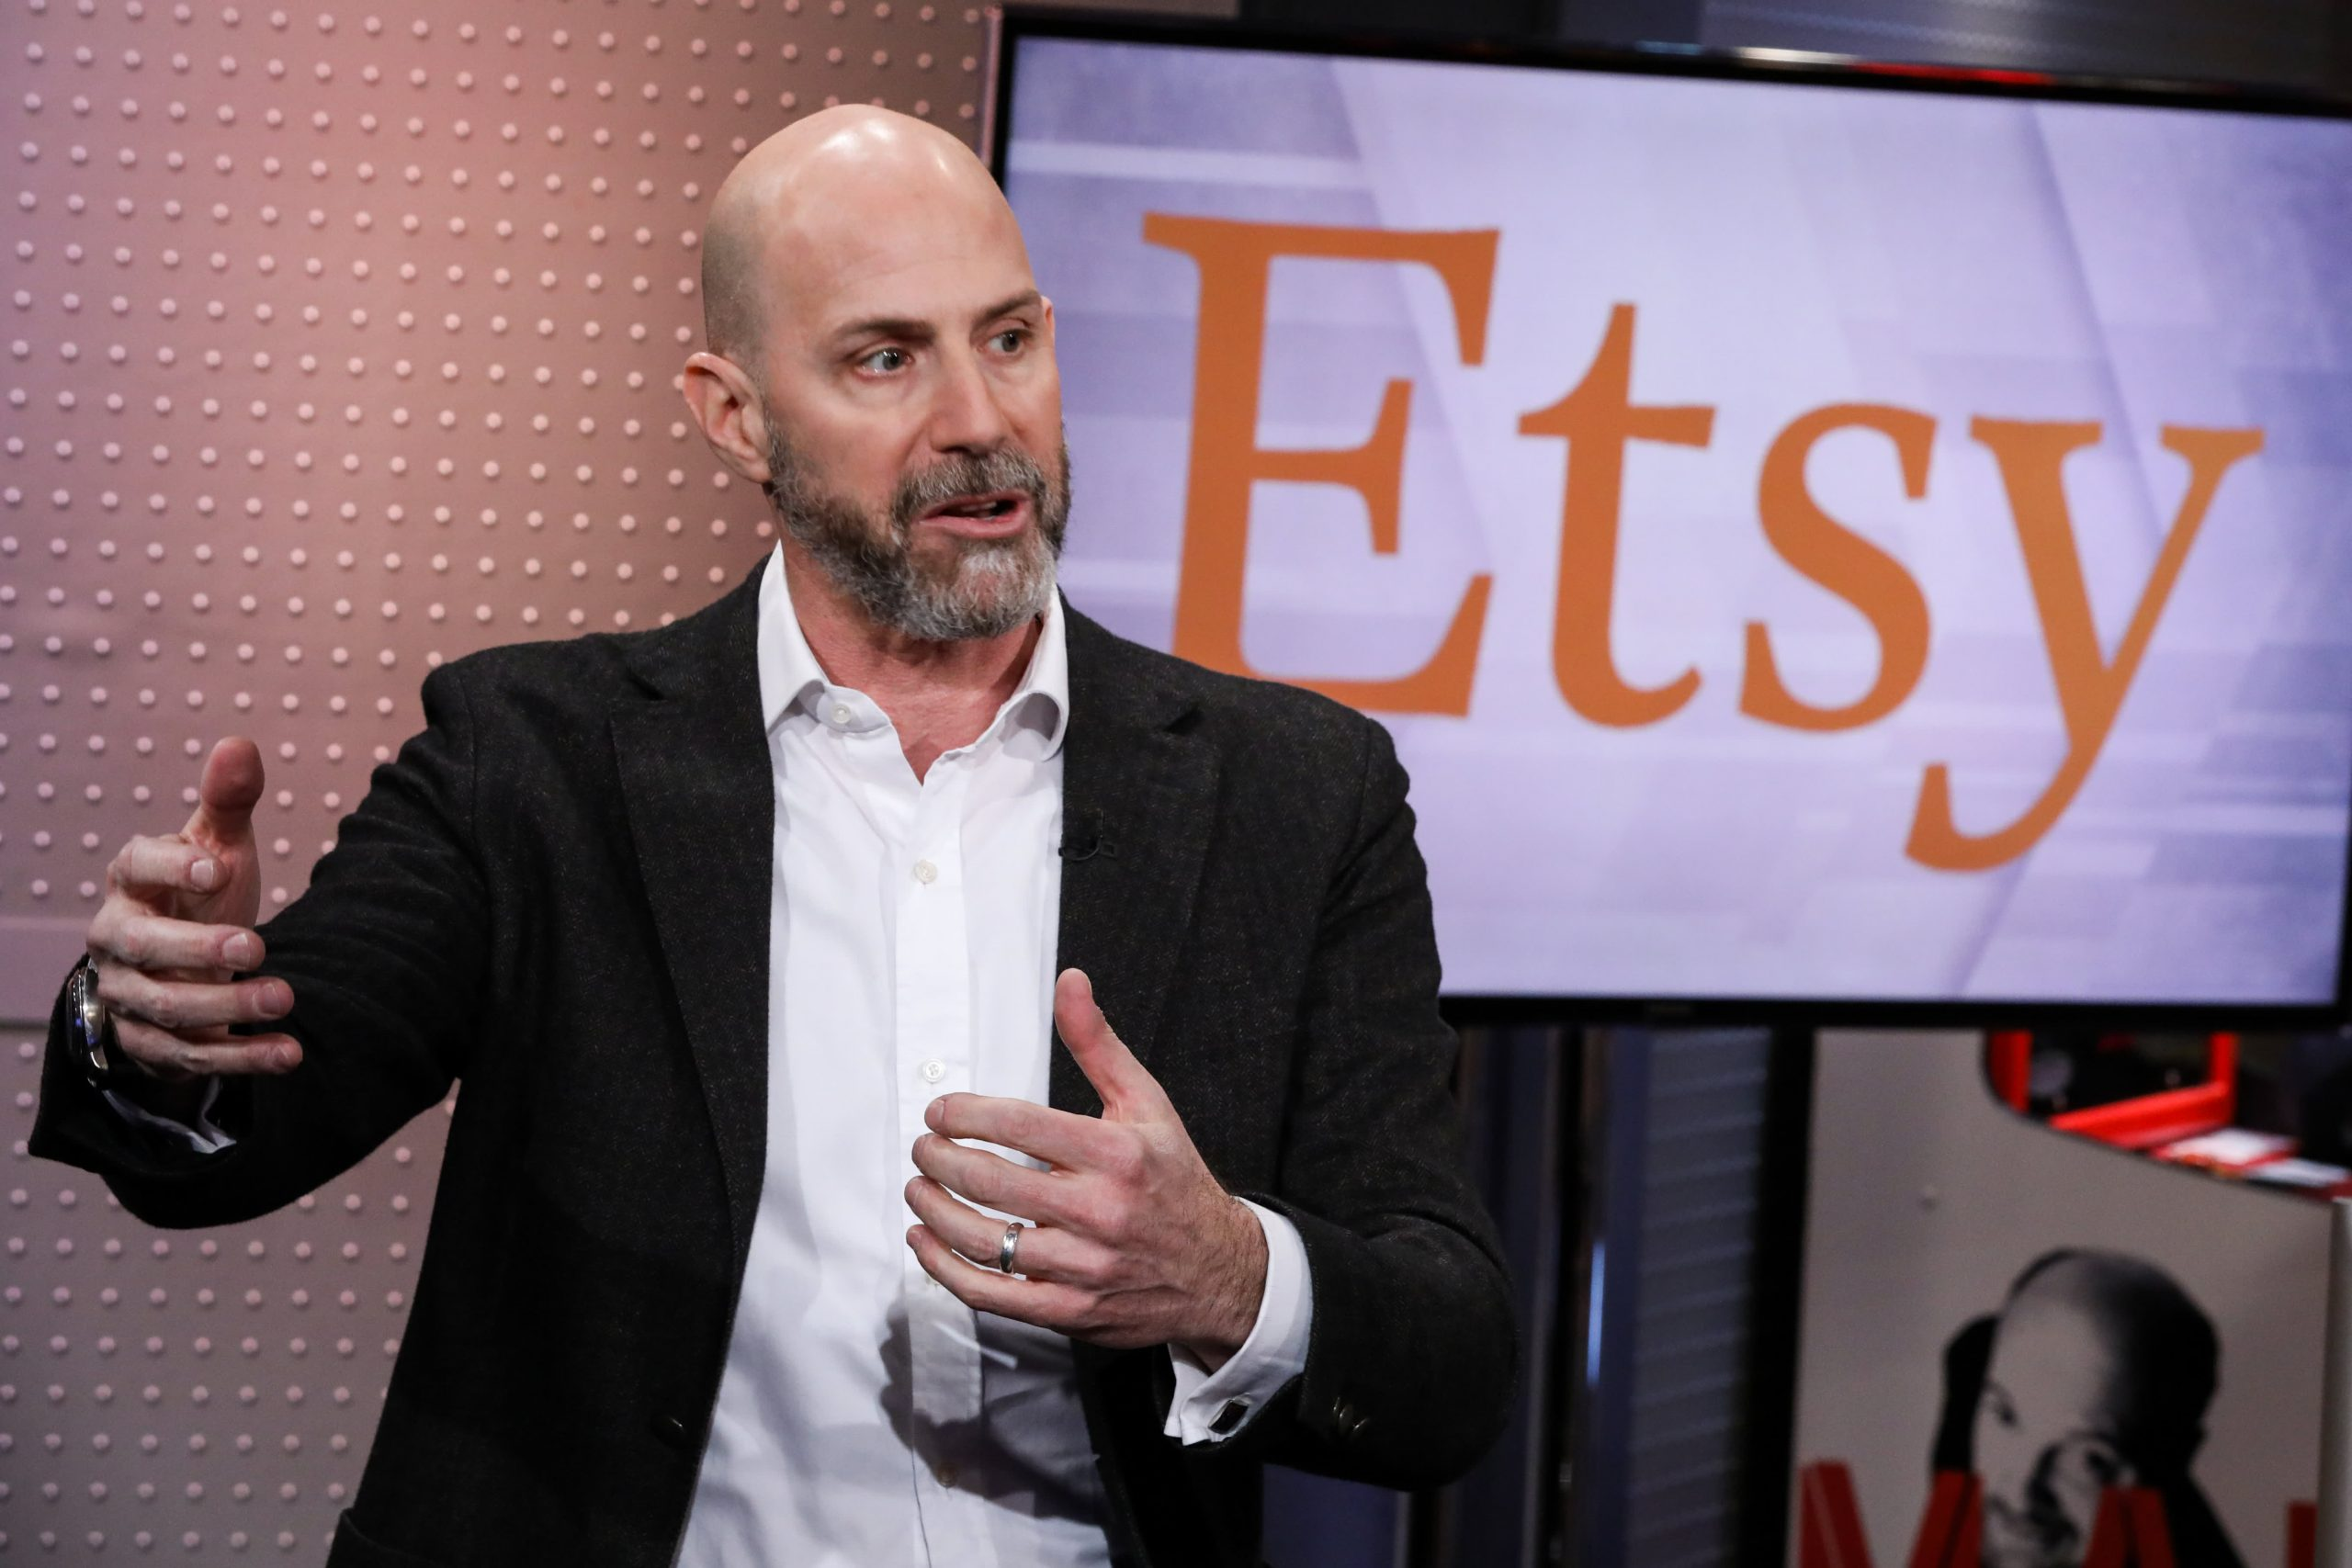 Stocks making biggest moves after hours: Etsy, Roku and more